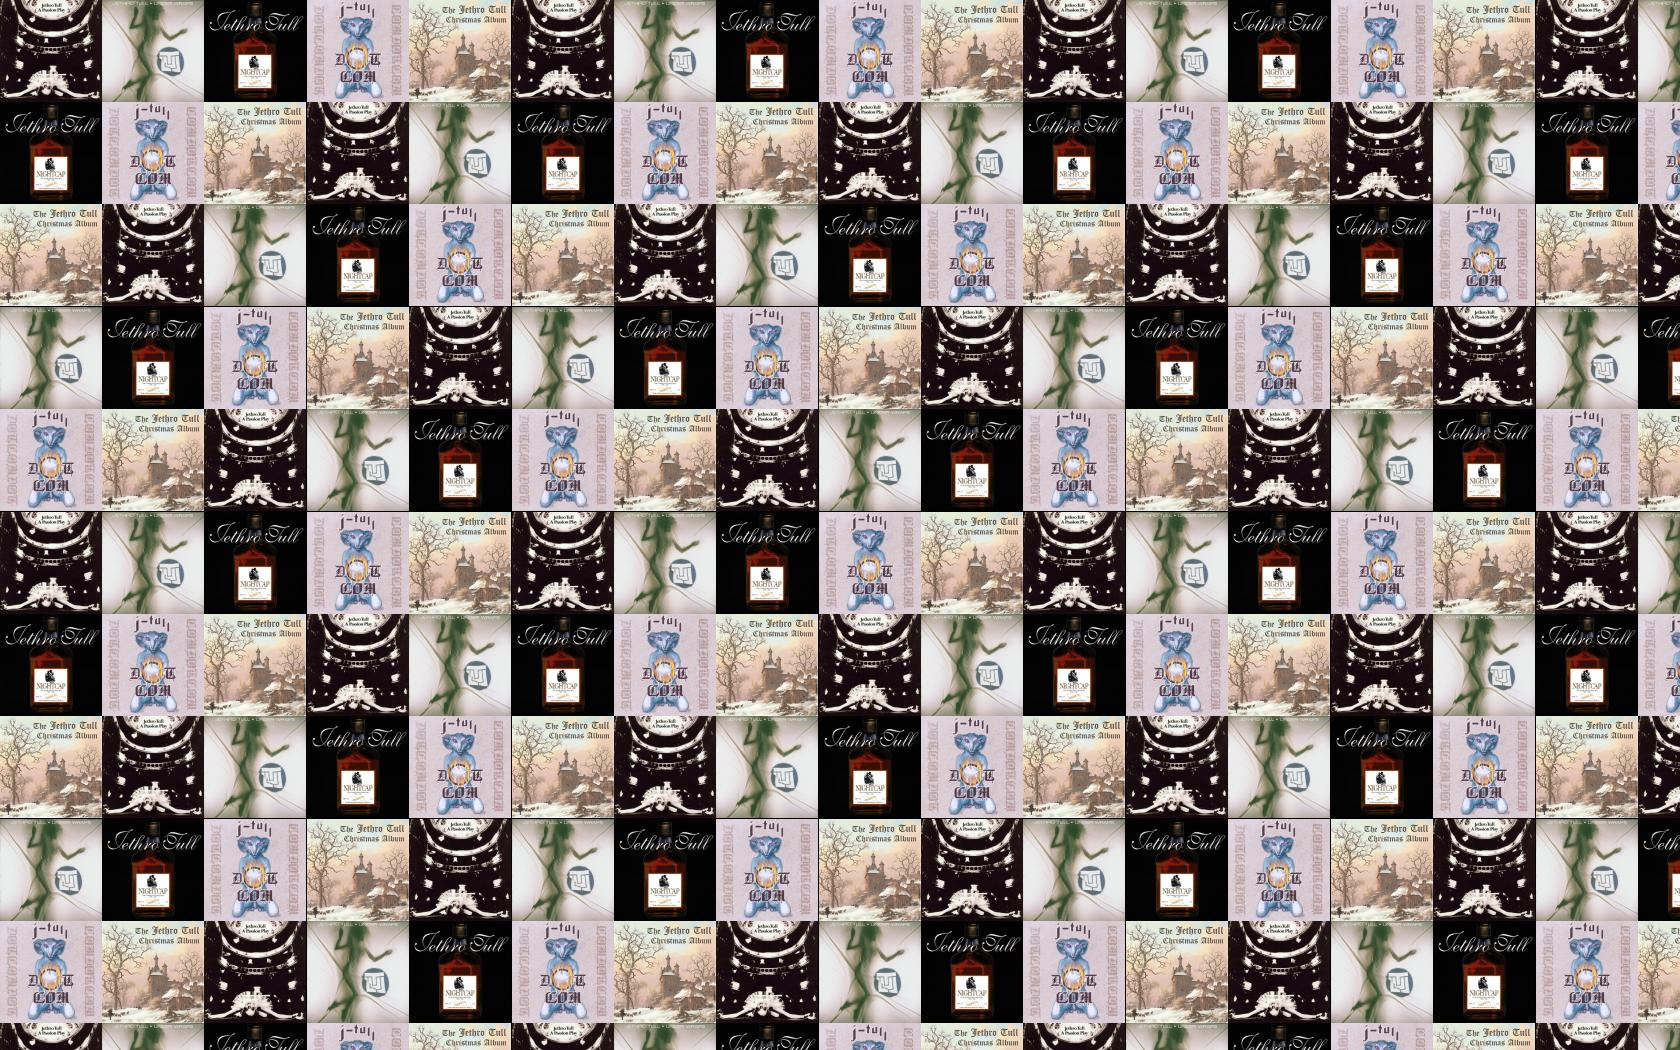 JETHRO TULL A PASSION PLAY Under Wraps Nightcap Wallpaper « Tiled ...